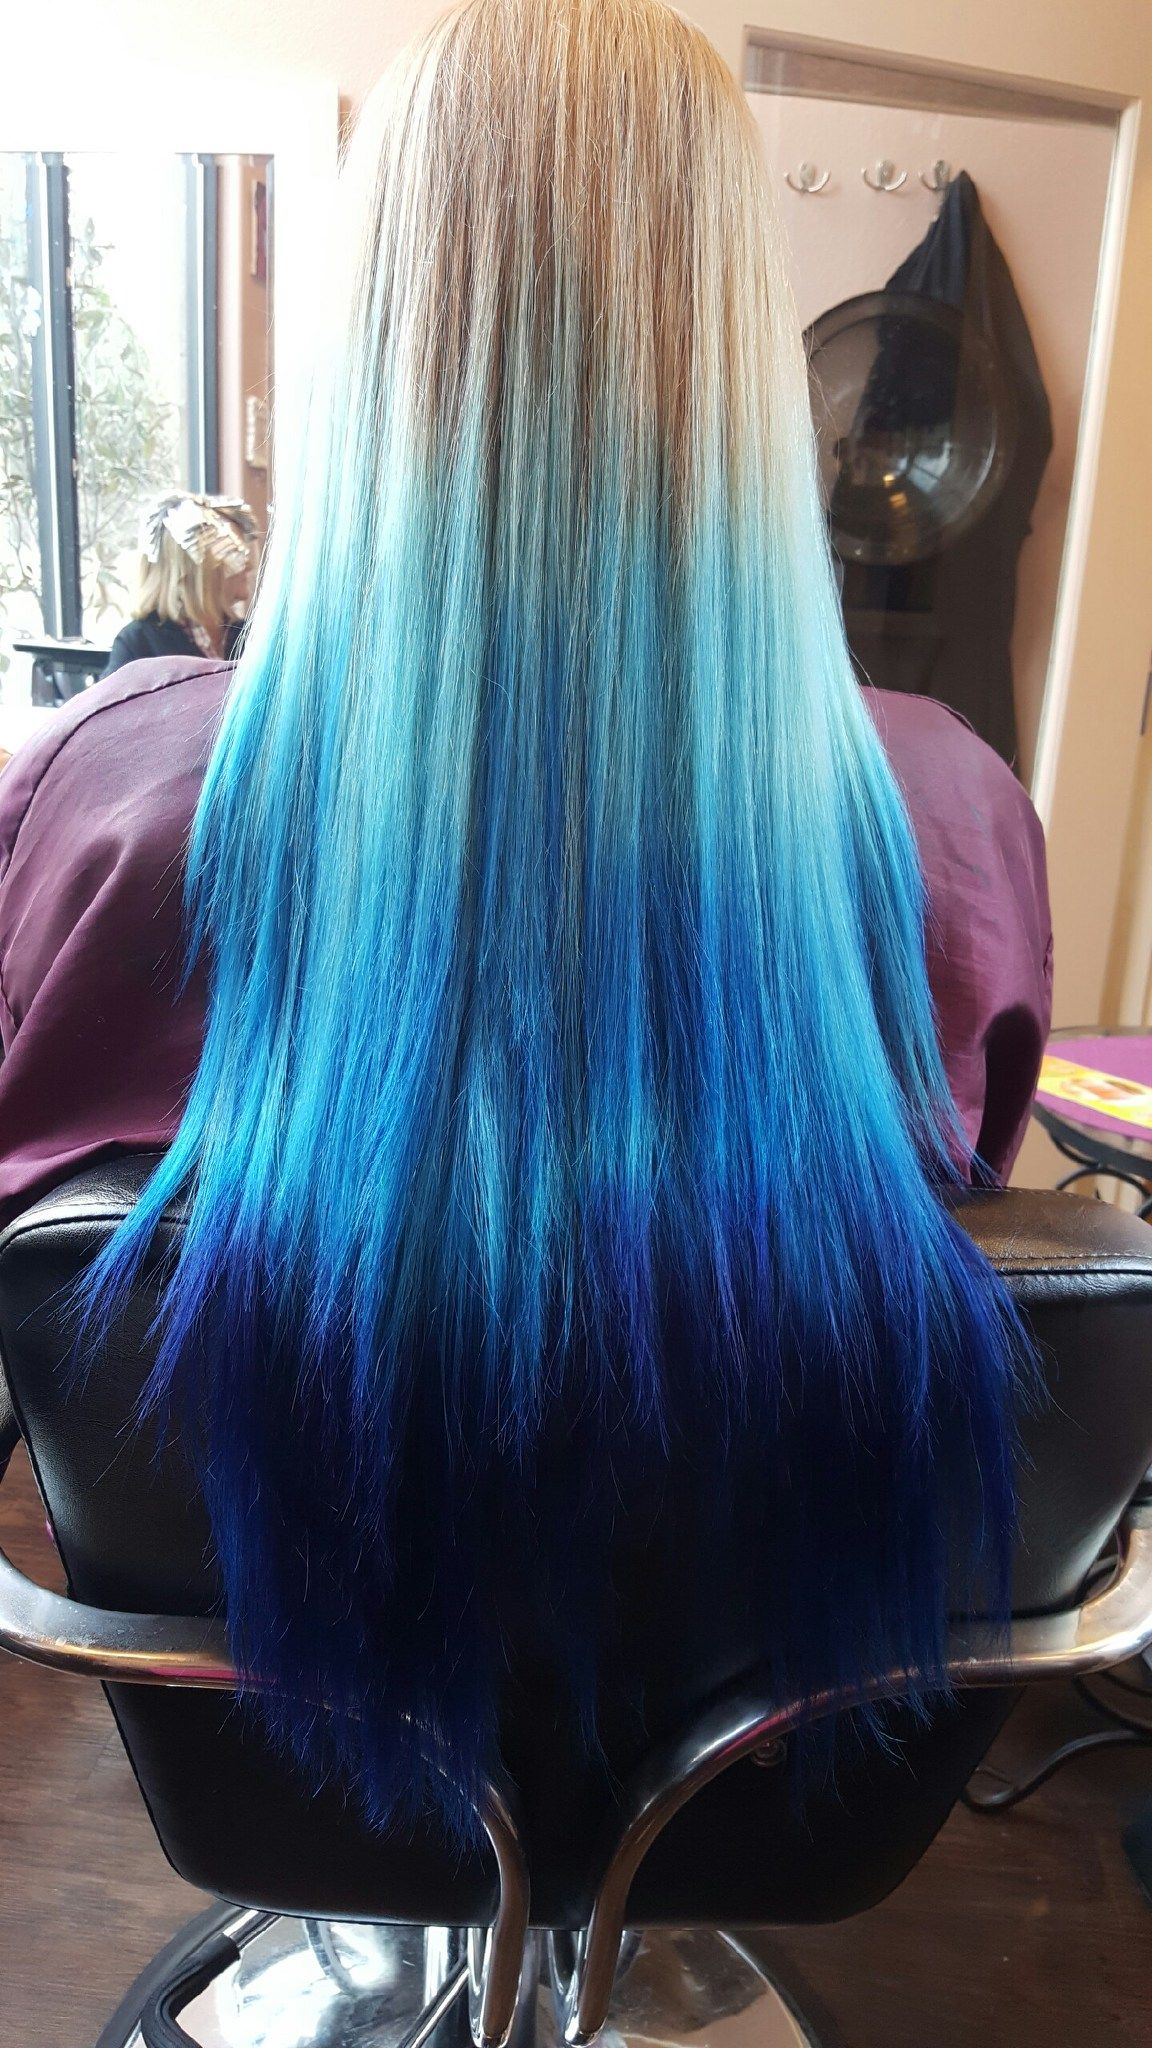 Natural Blonde To Dark Blue Ombre Hair Dyed Hair Blue Hair Color Blue Blue Ombre Hair